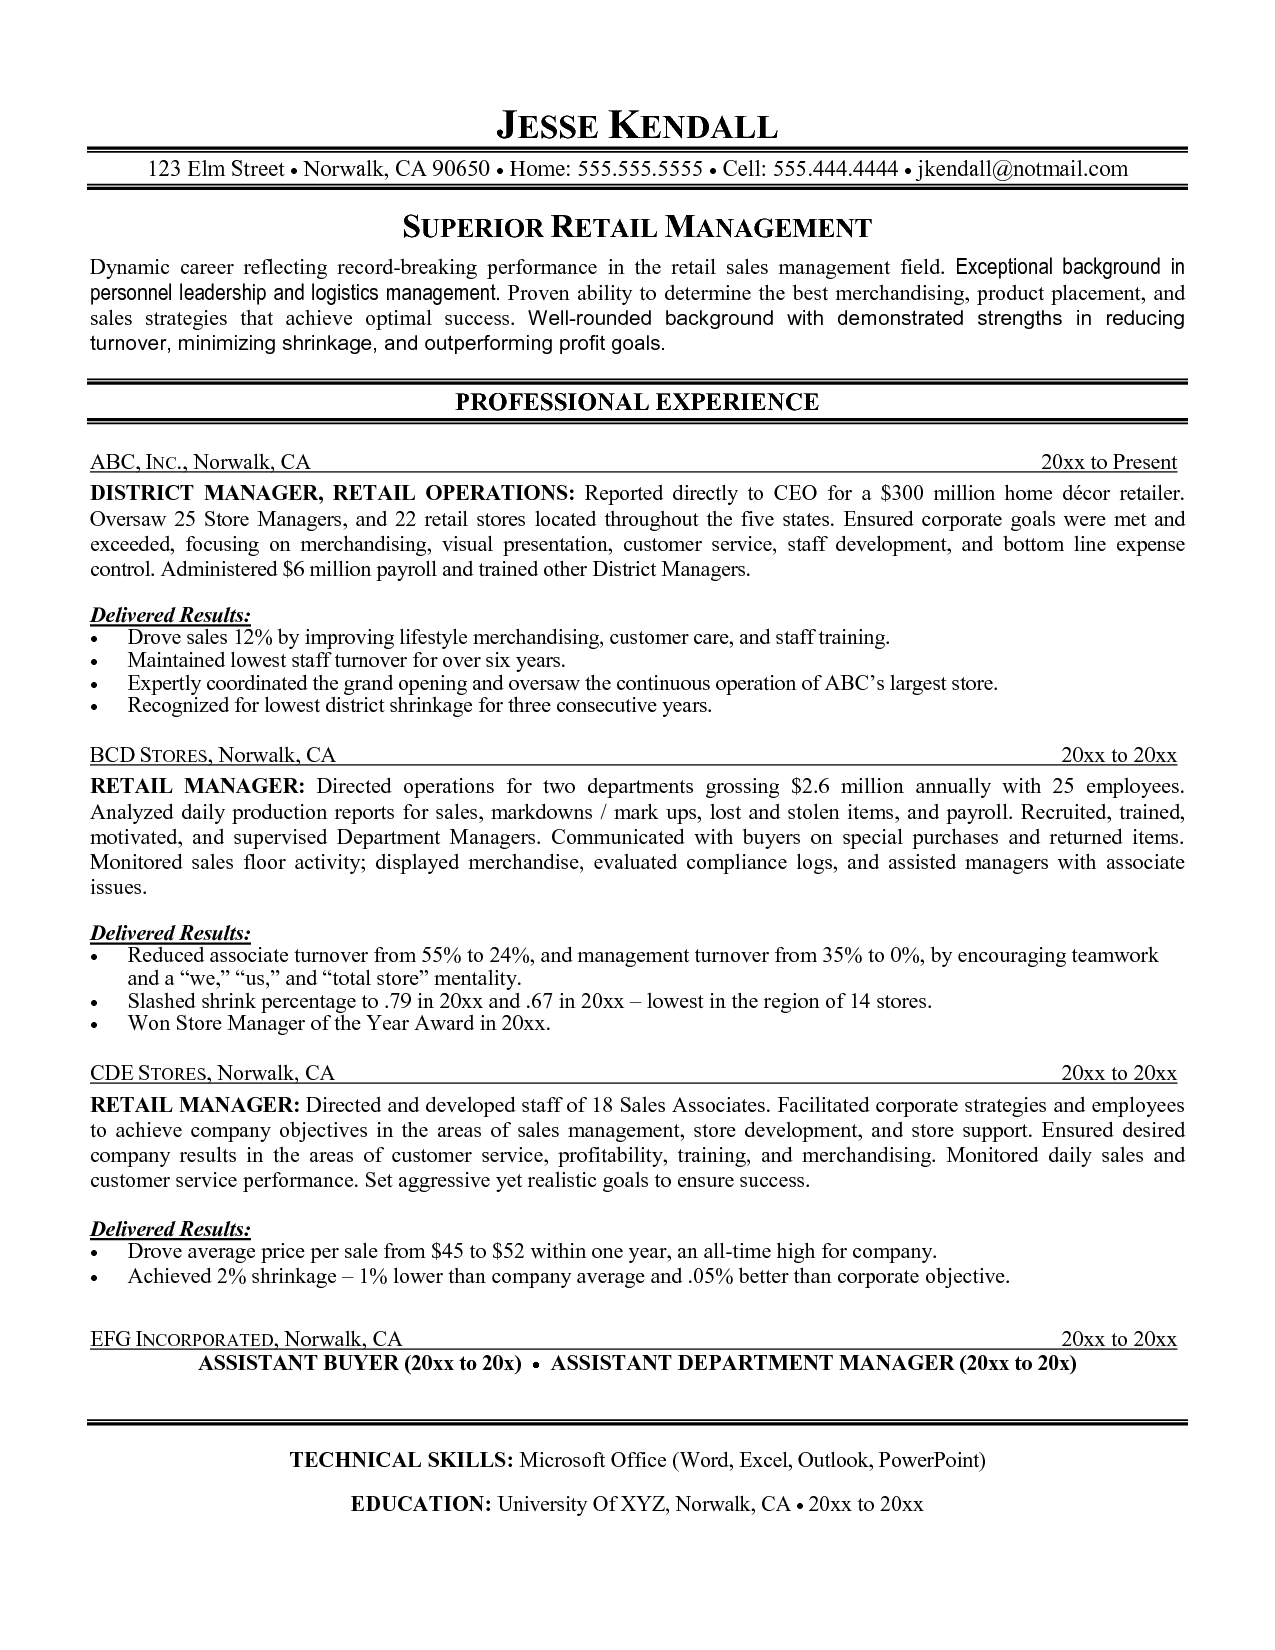 Retail management resume examples retail resume objective for Sample resume for assistant manager in retail